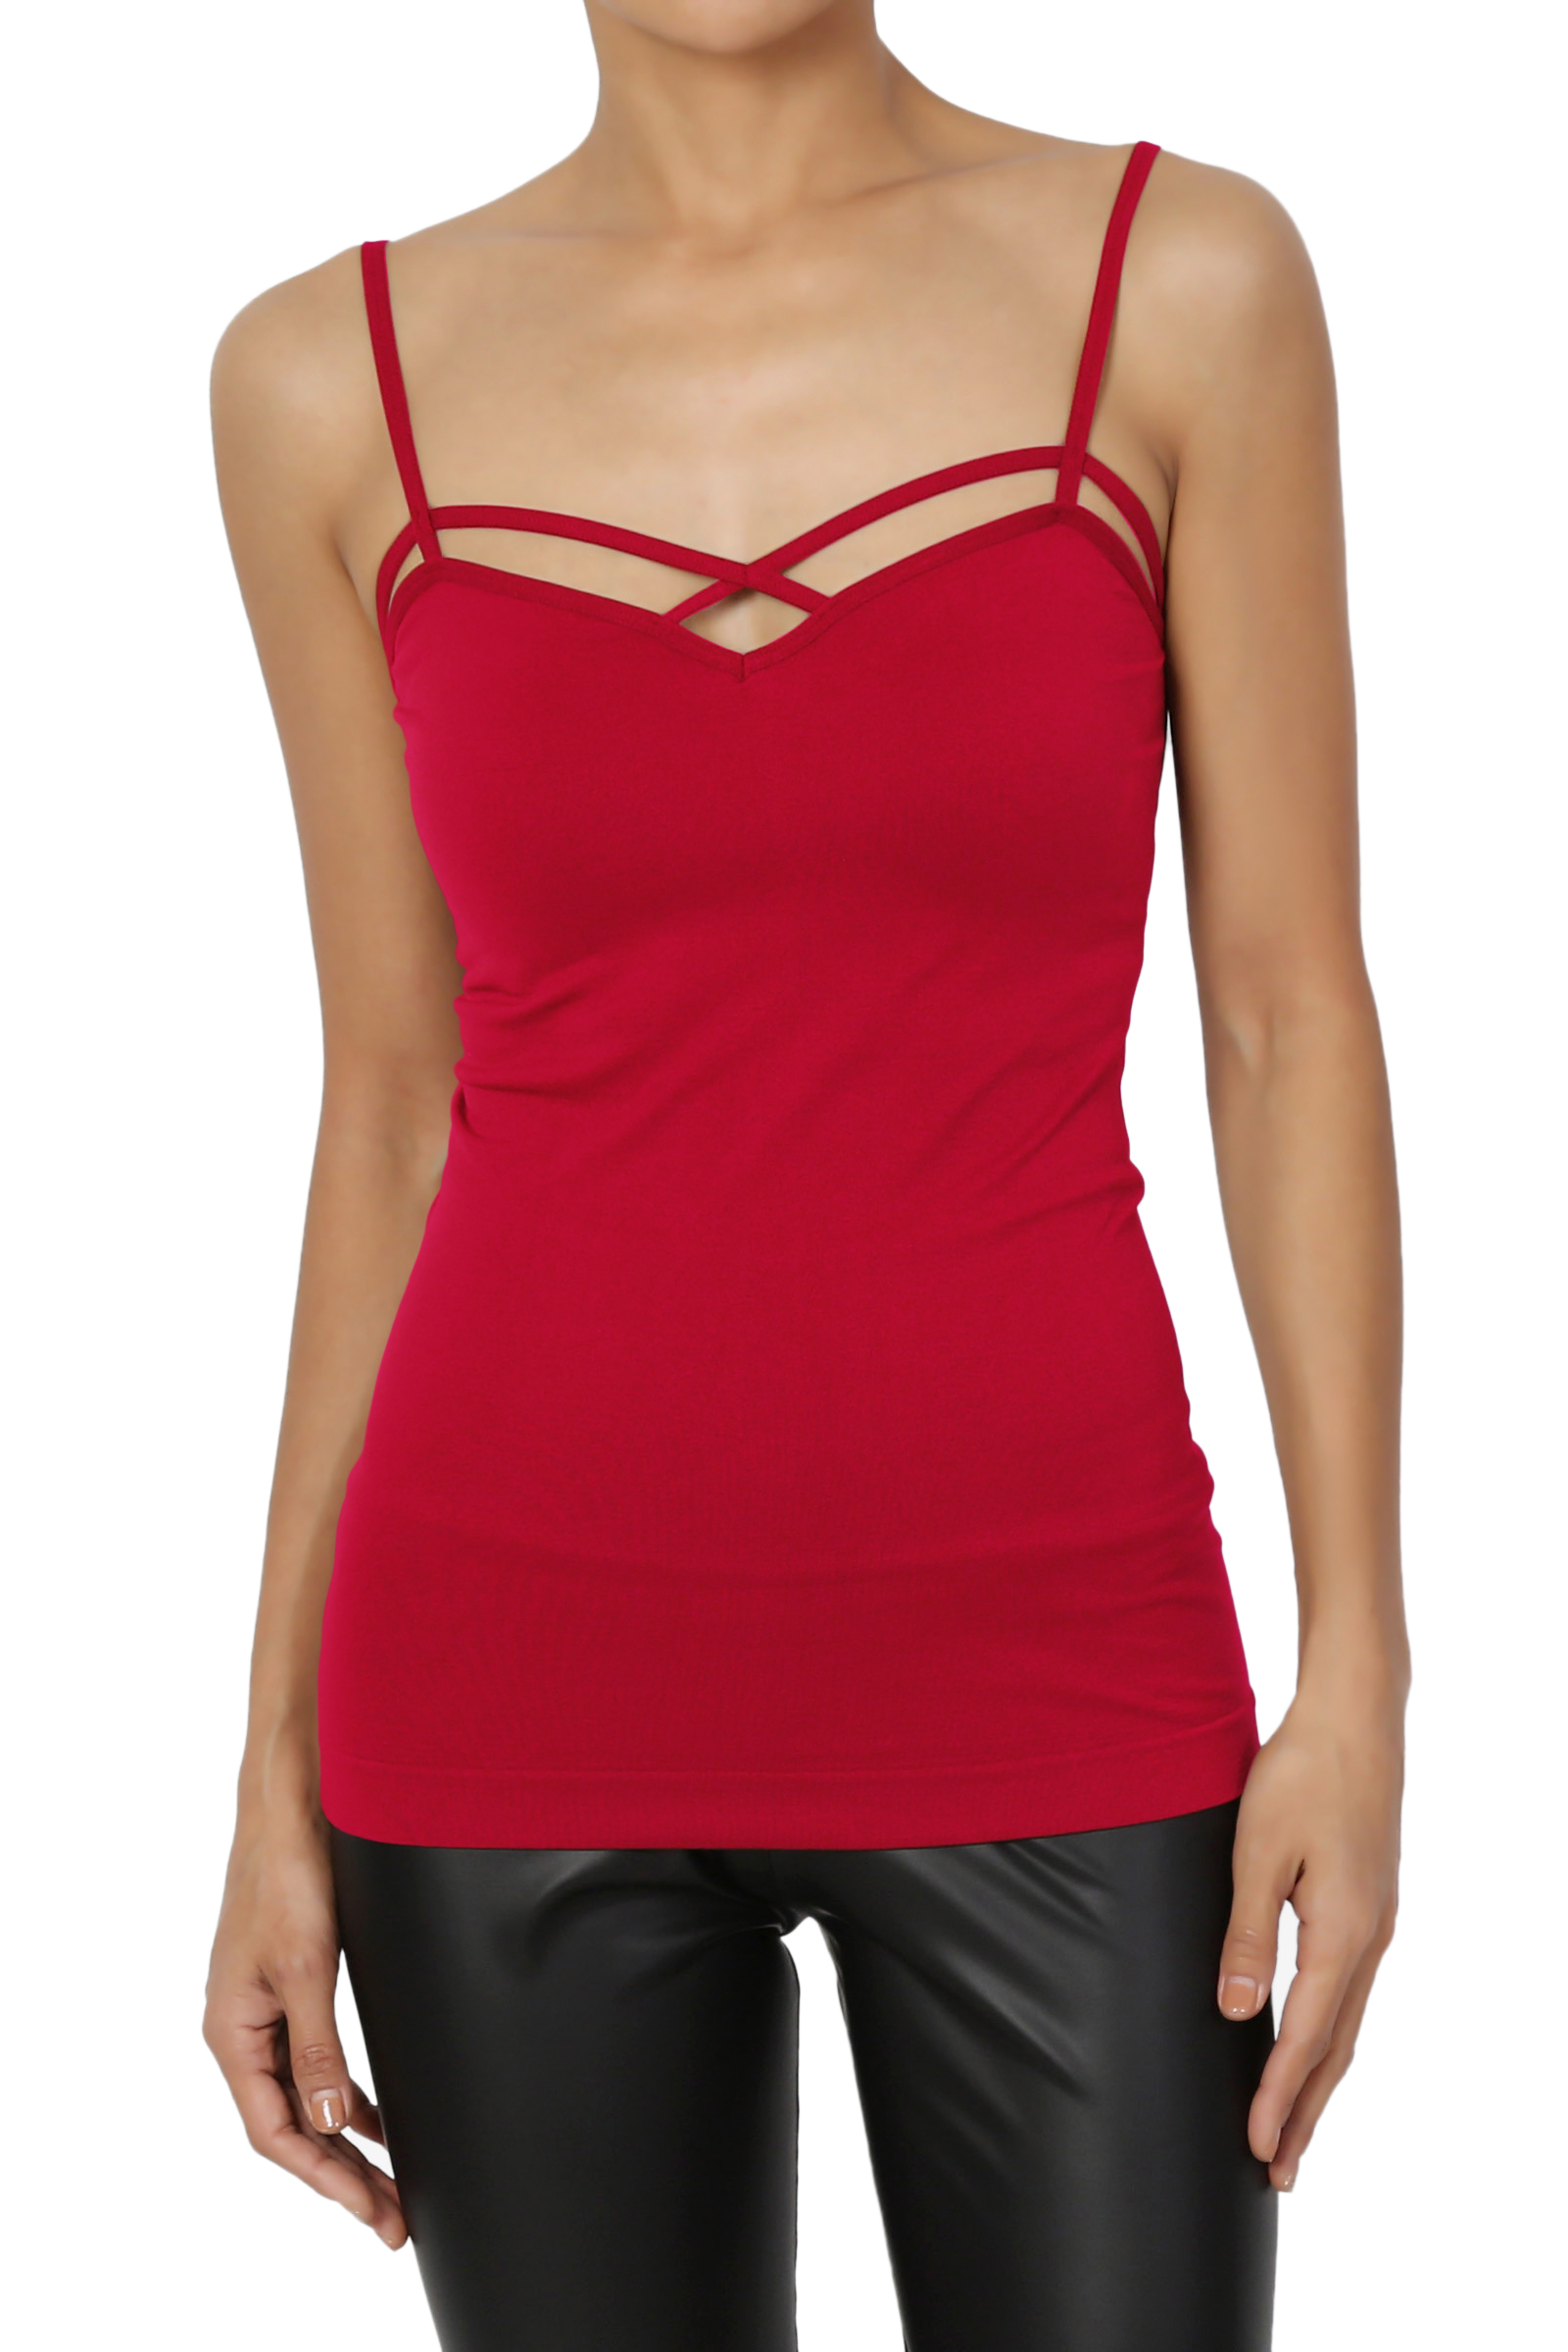 TheMogan Women's & PLUS Caged Front Spaghetti Strap Seamless Tank Top Camisole